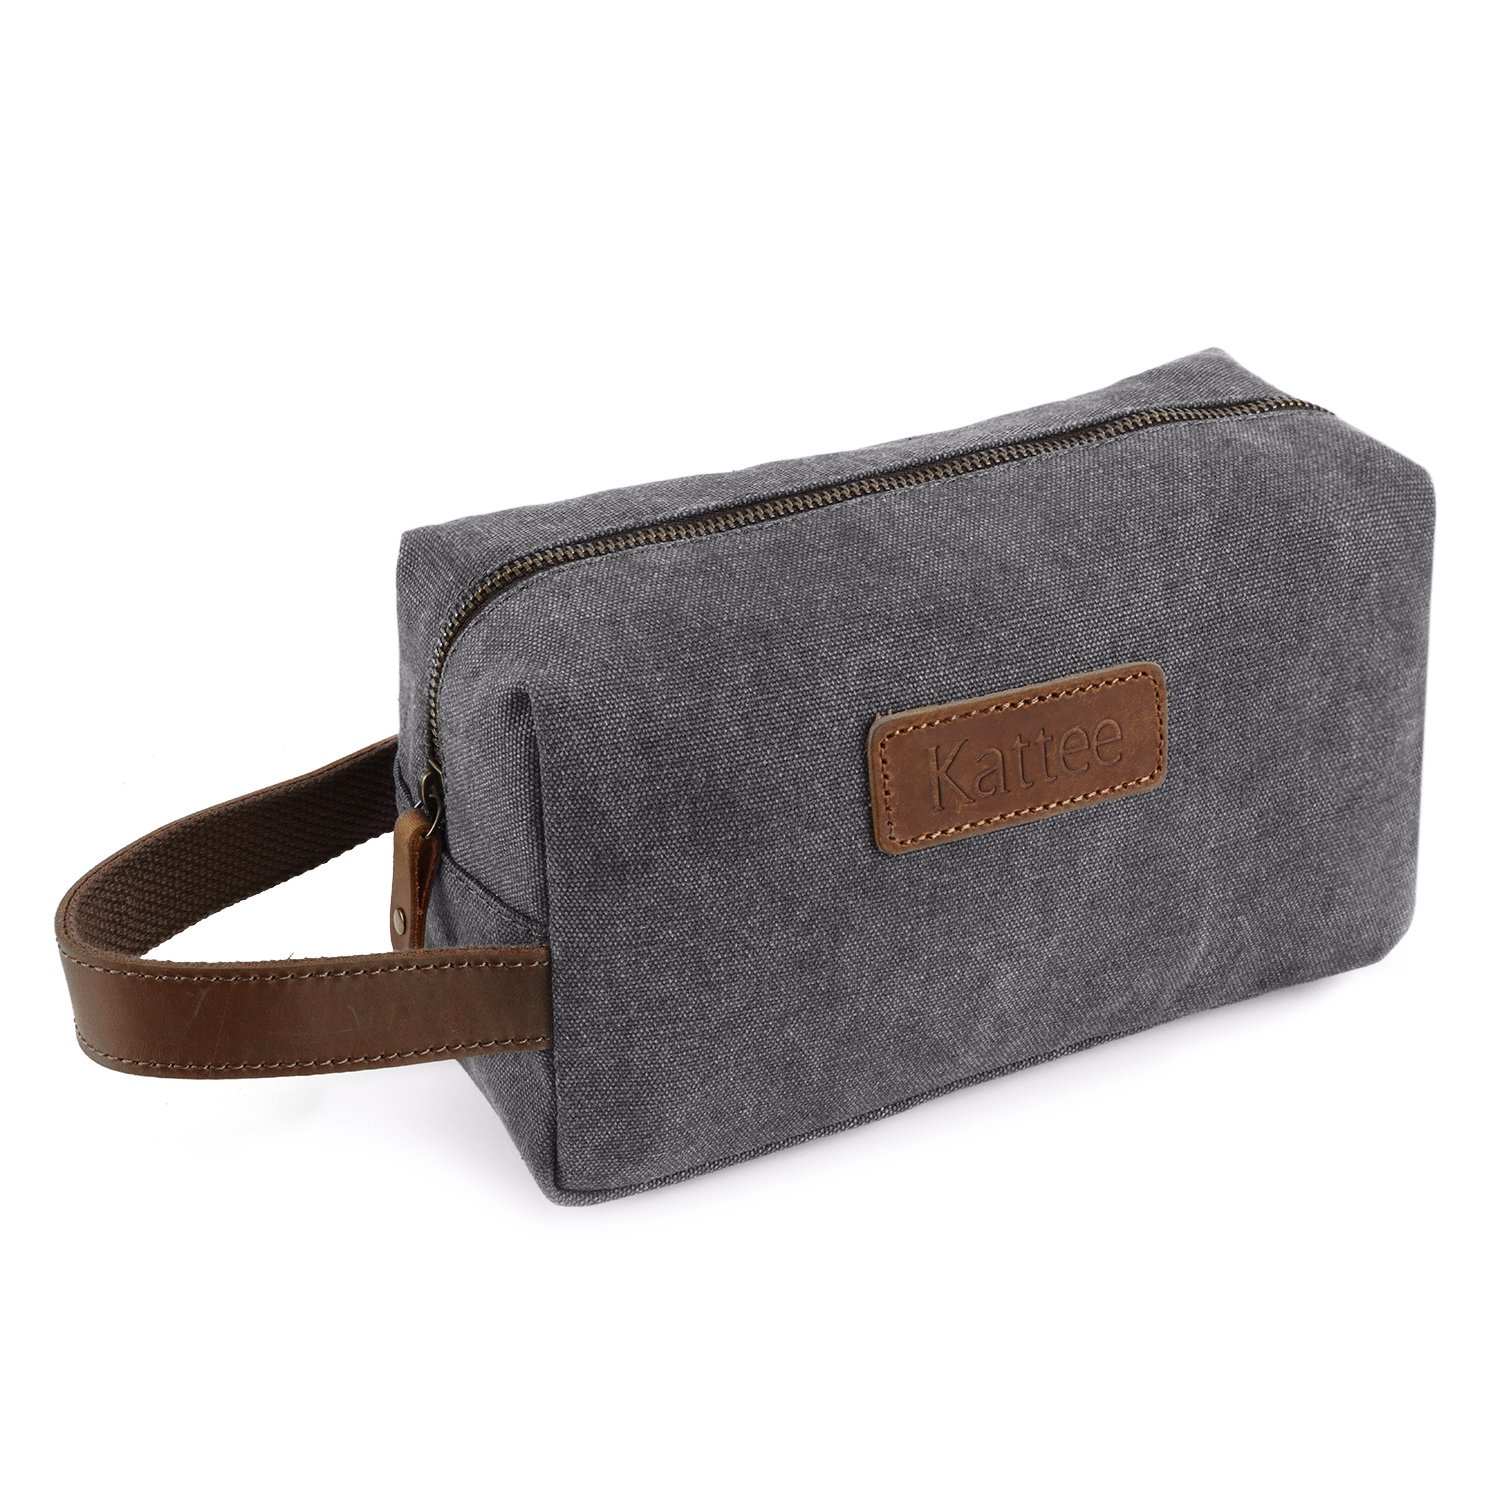 Kattee Mens Travel Toiletry Bag, Canvas Leather Cosmetic Makeup Organizer Shaving Dopp Case (Gray)